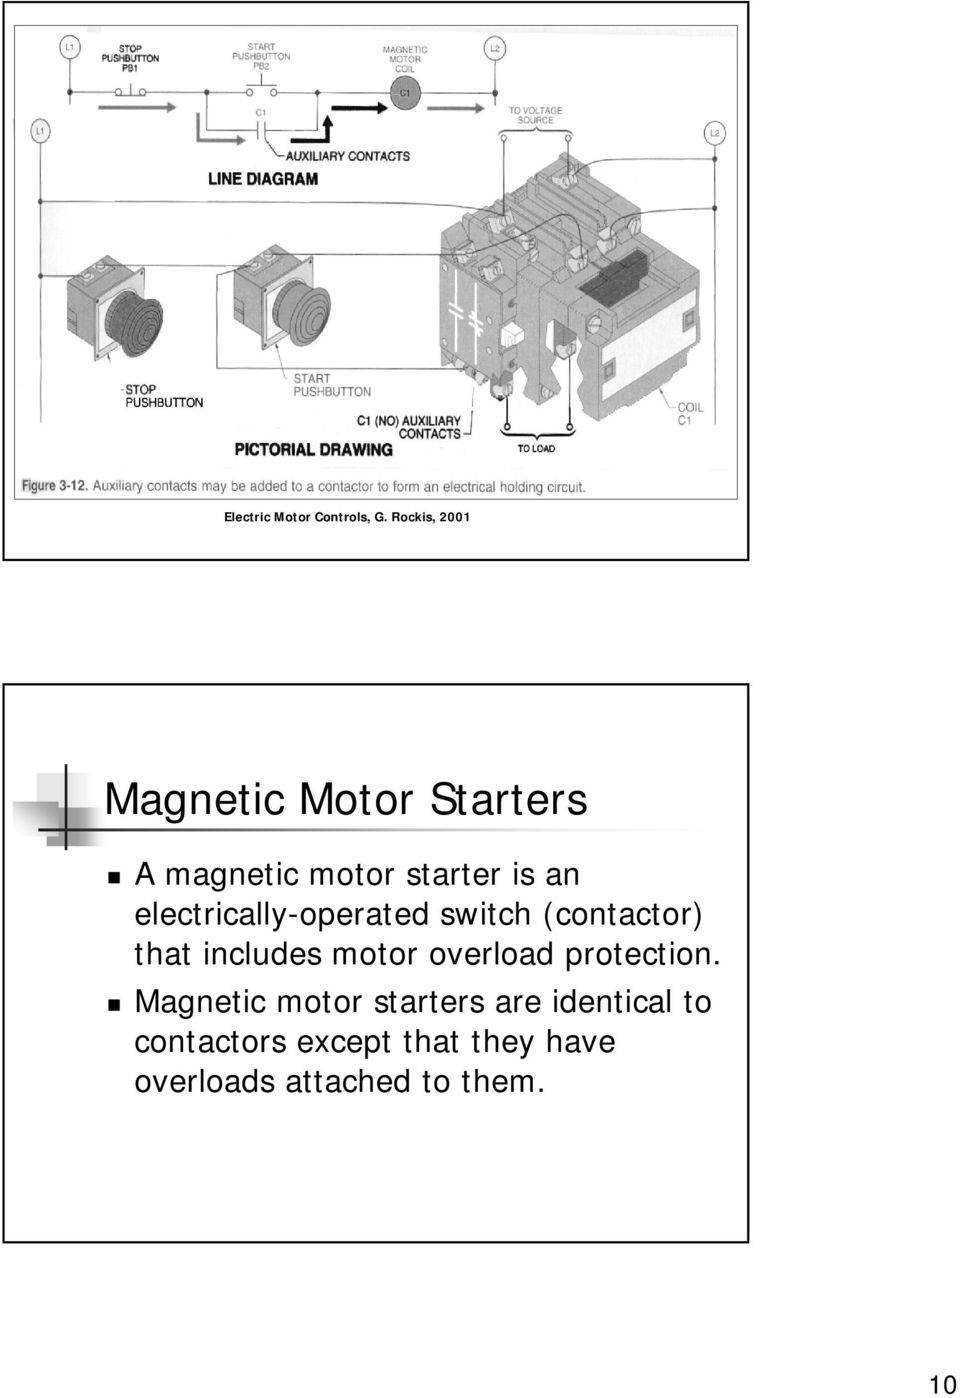 Electrical Symbols And Line Diagrams Pdf Multiple Start Stop Station Wiring Diagram Overload Protection